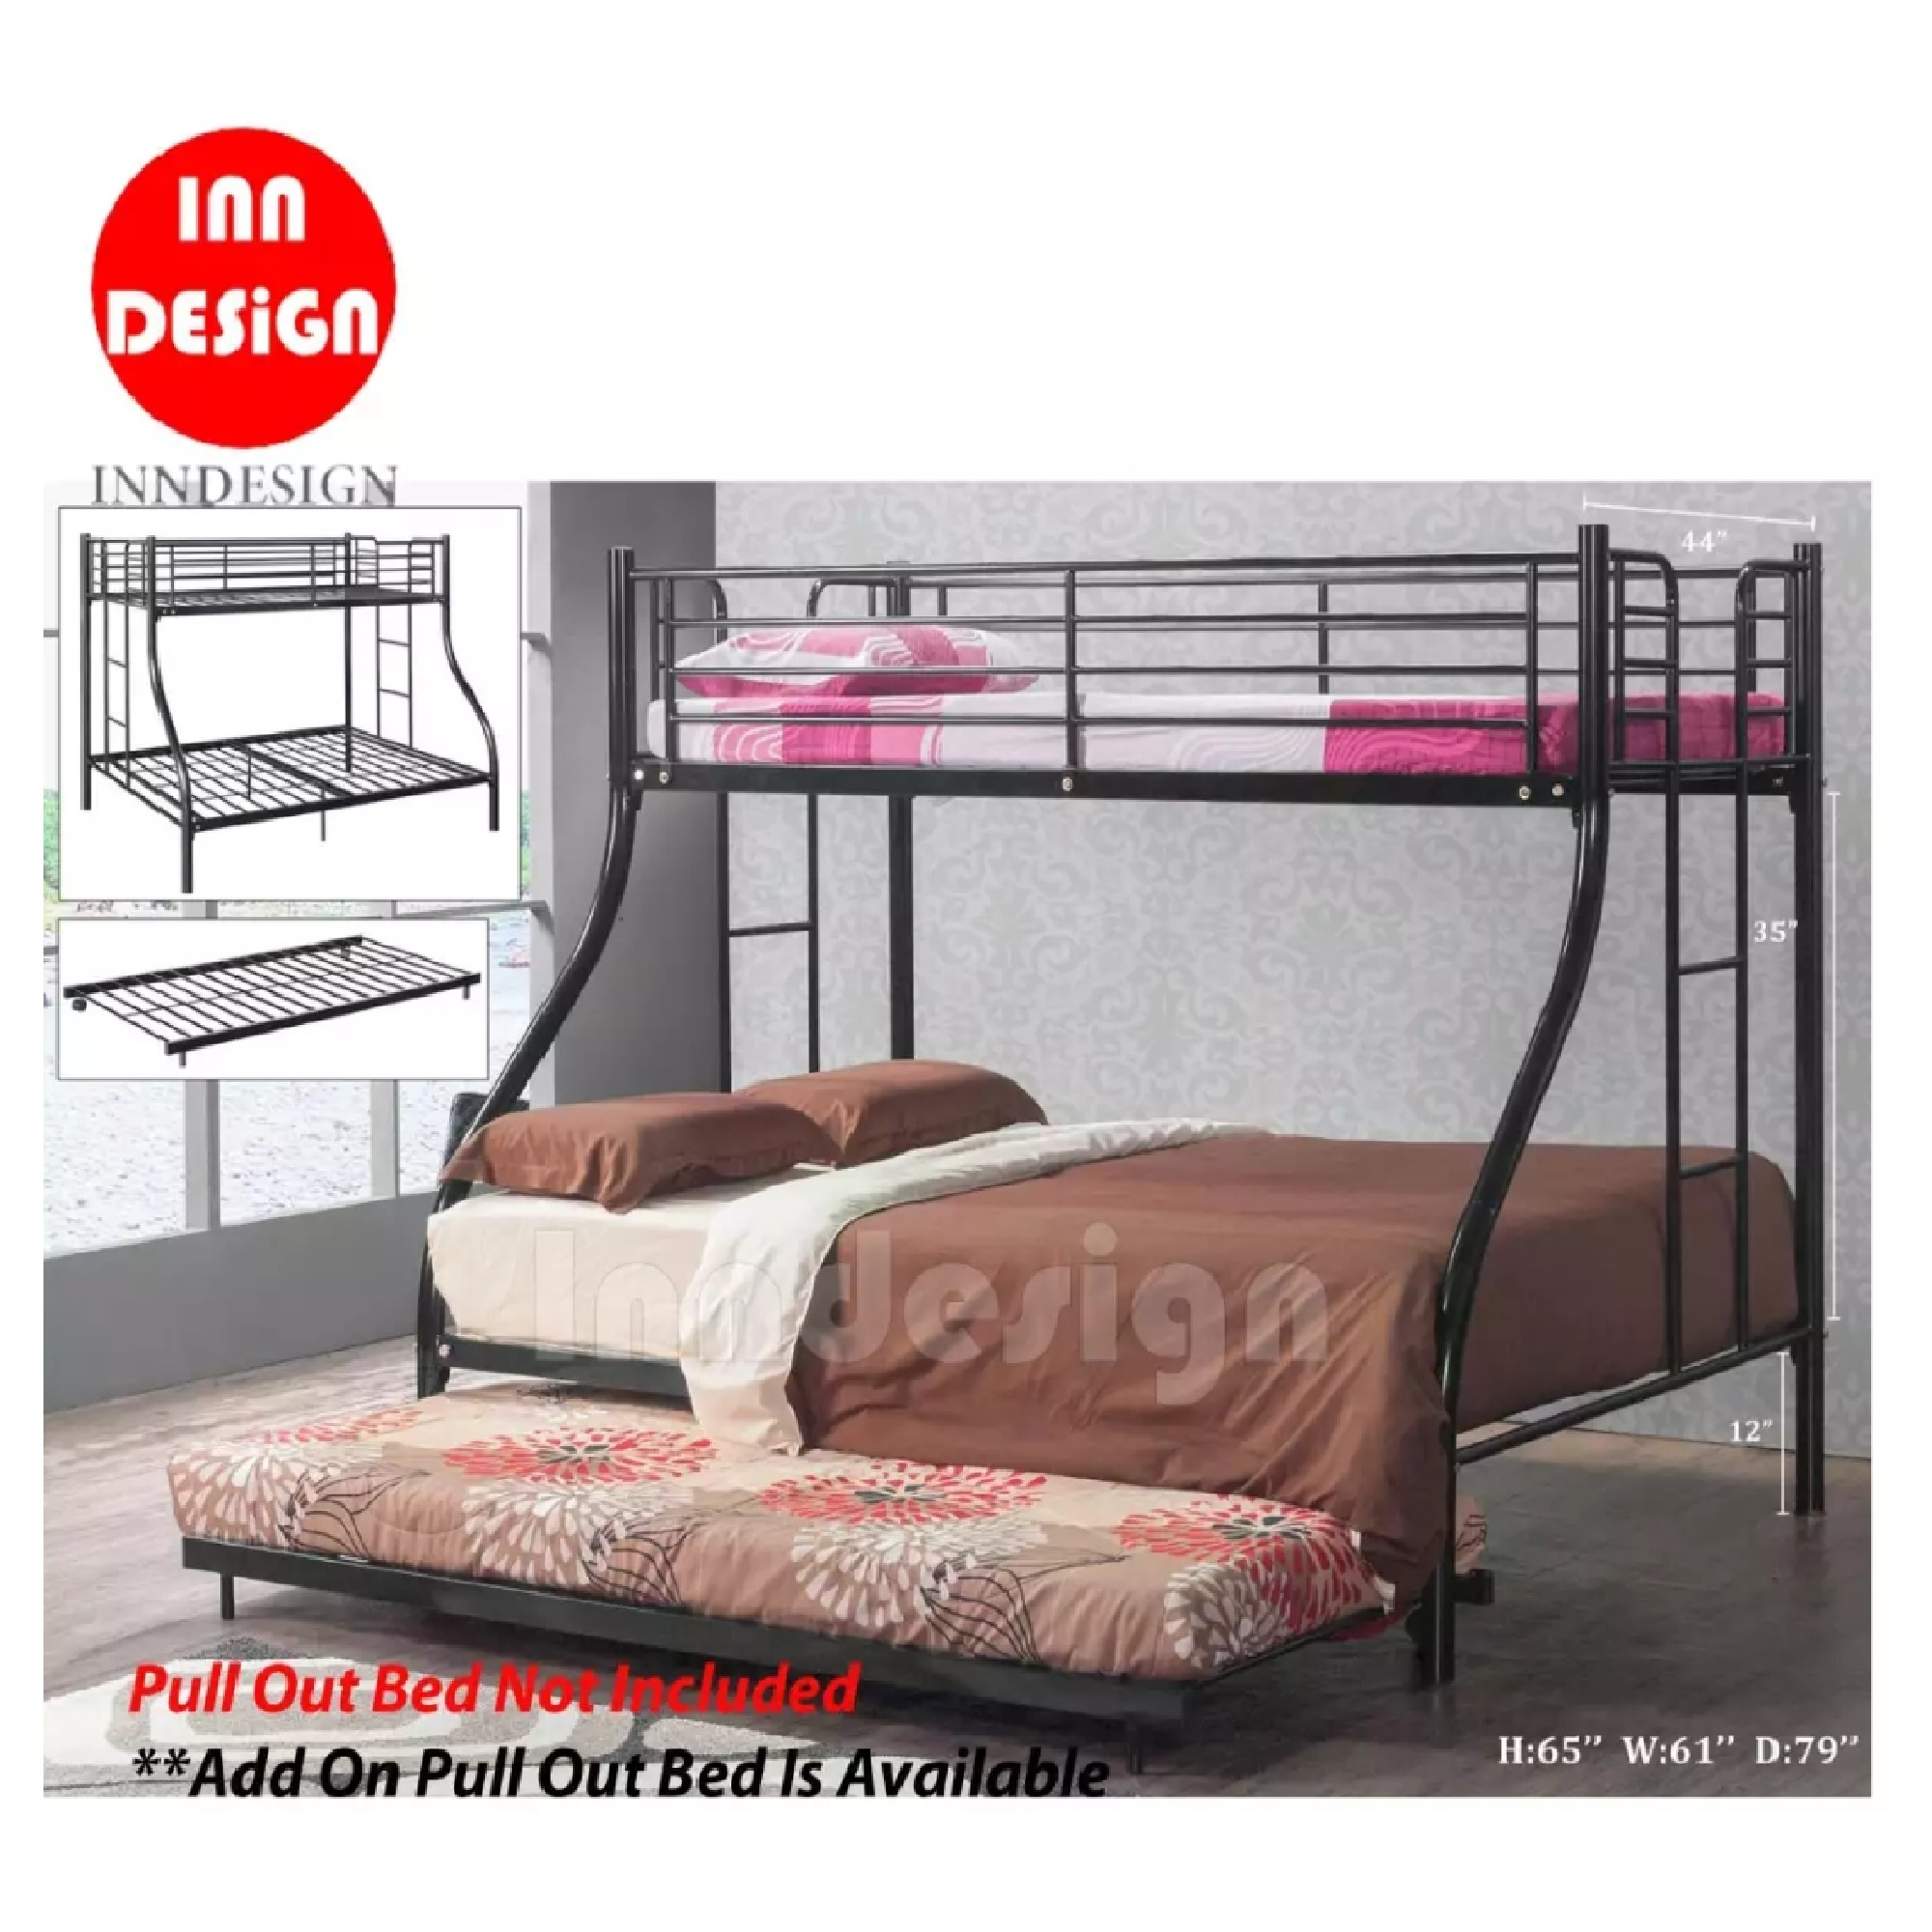 INNDESIGN Bunk Bed / Double Desker /Metal Bed Frame Queen & Single Size (Black)